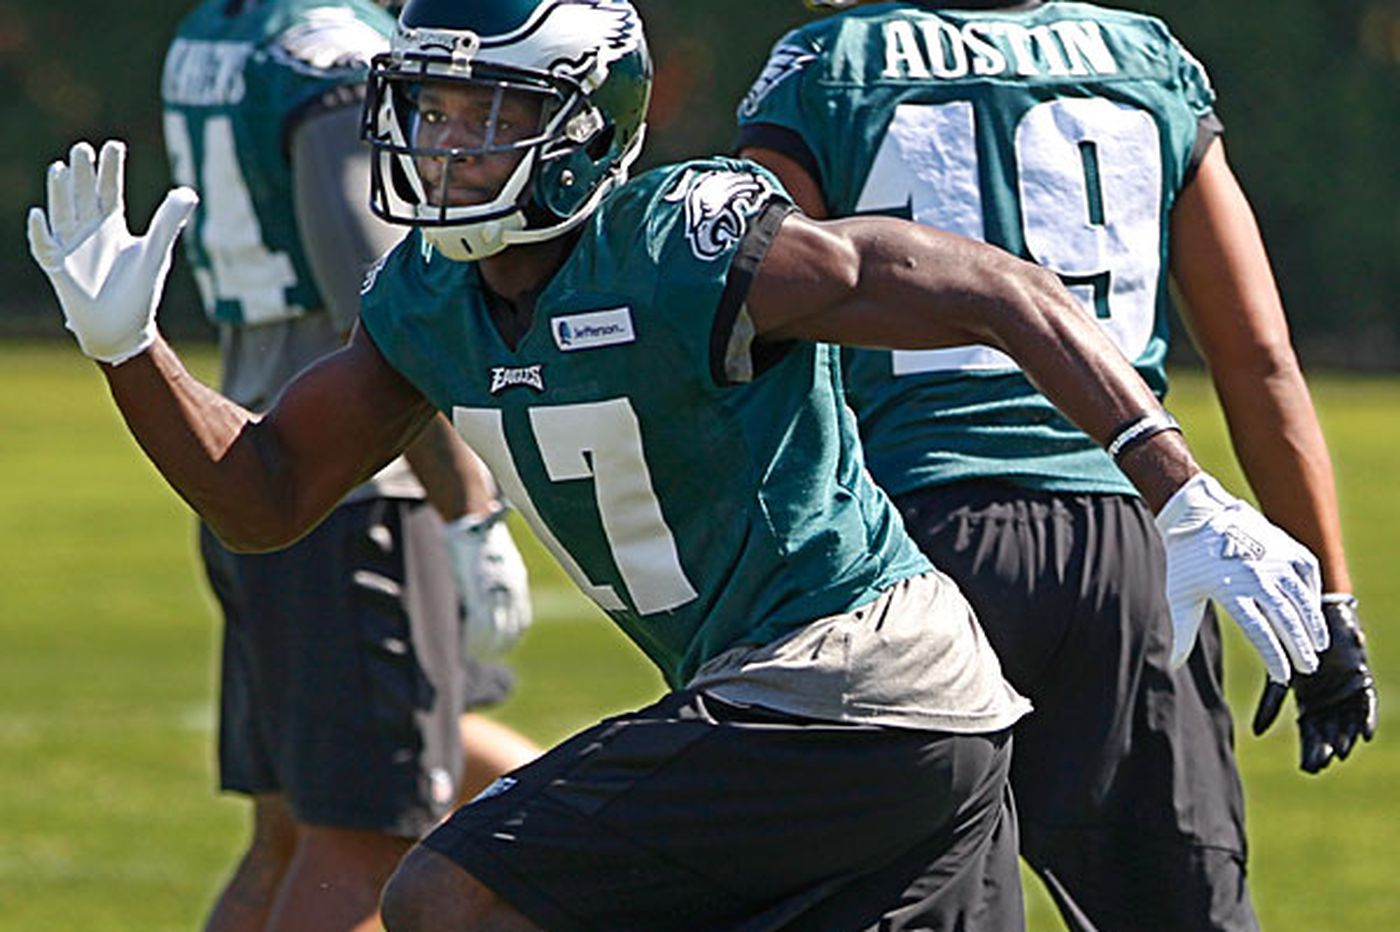 Top pick Agholor still seeking breakout game for Eagles